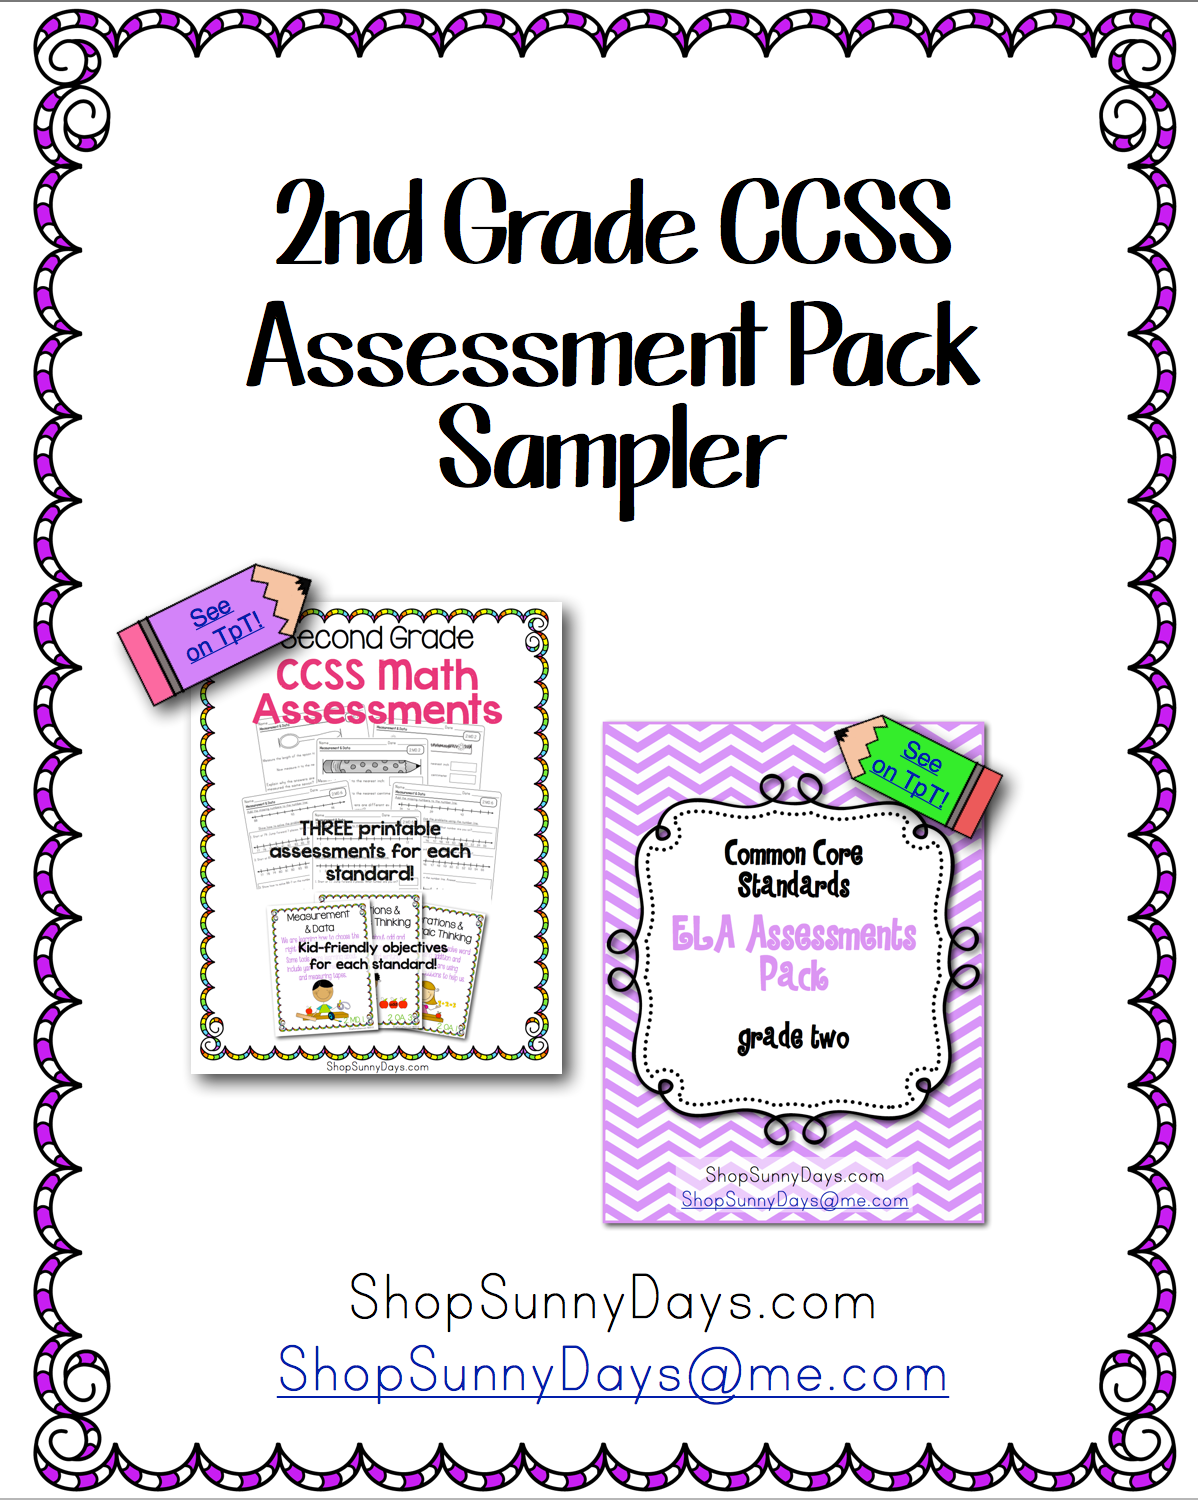 CCSS Assessments for 2nd grade - Classroom Freebies